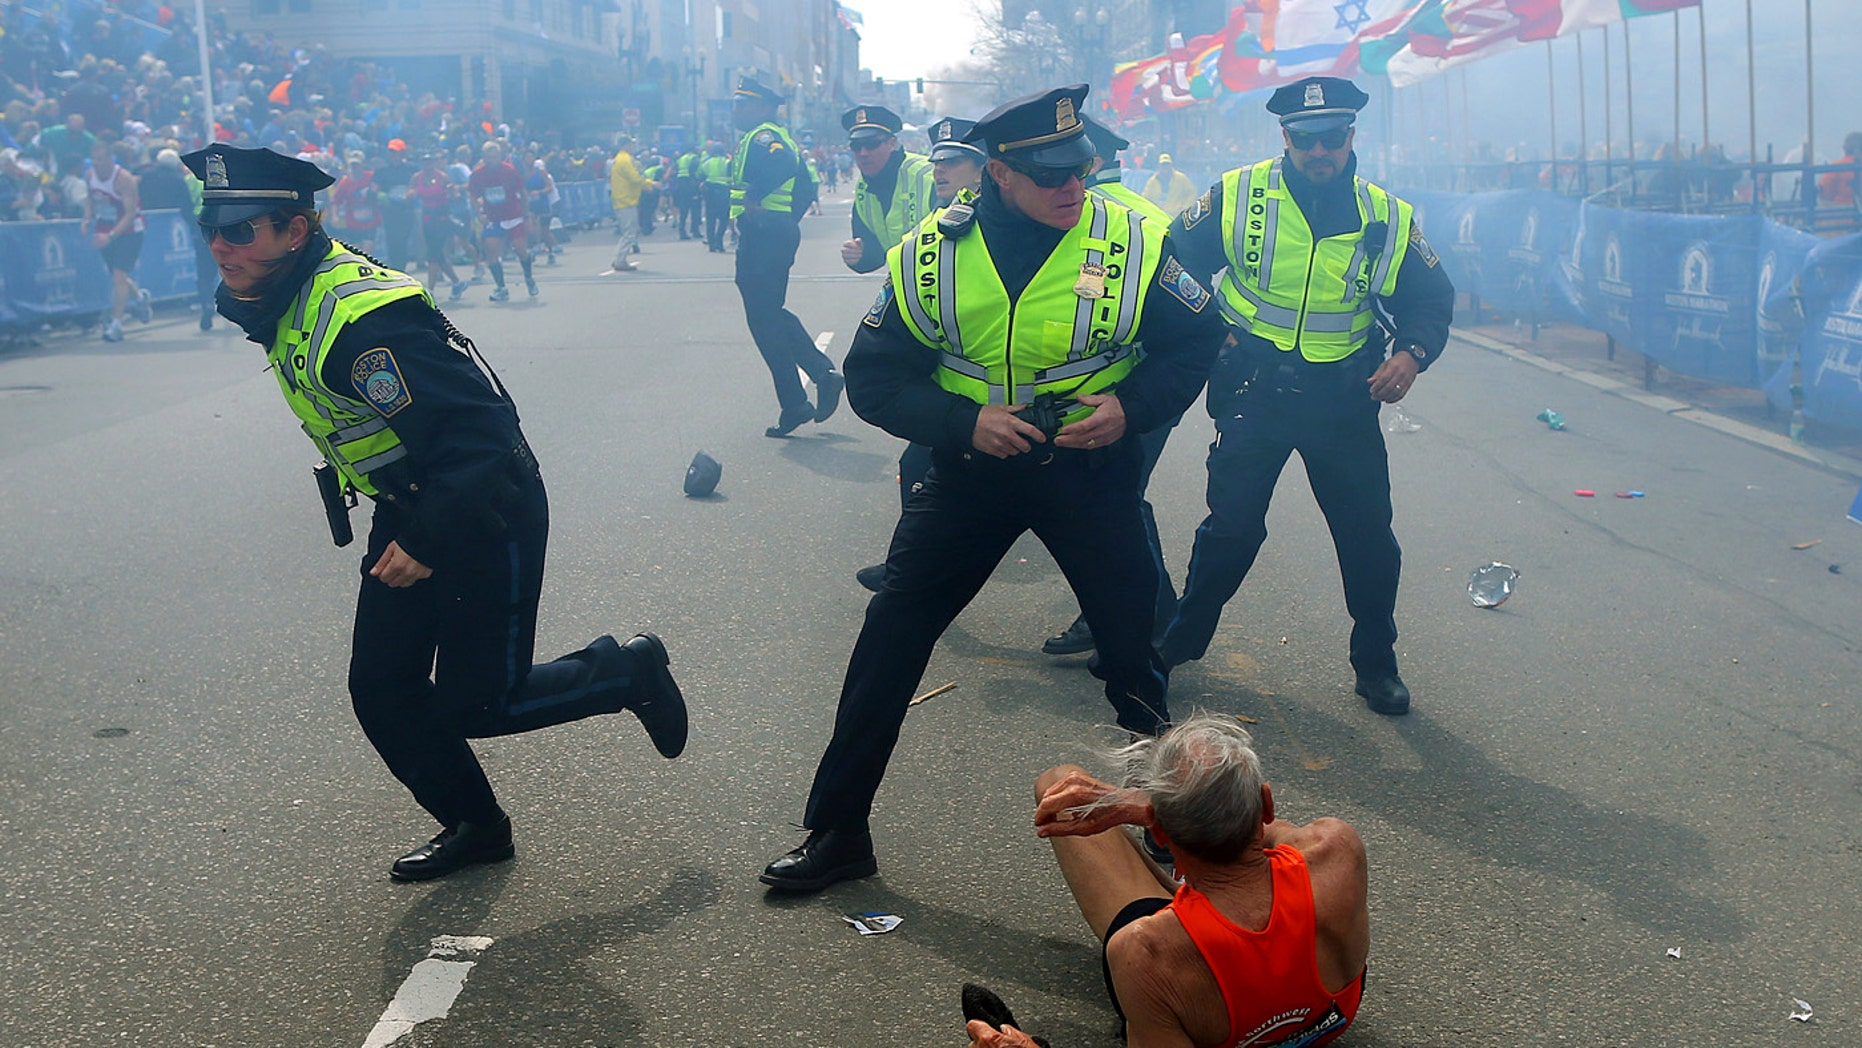 Police officers react to a second explosion at the finish line of the Boston Marathon in Boston, Monday, April 15, 2013. Two explosions shattered the euphoria of the Boston Marathon finish line on Monday, sending authorities out on the course to carry off the injured while the stragglers were rerouted away from the smoking site of the blasts. (AP Photo/The Boston Globe,  John Tlumacki)